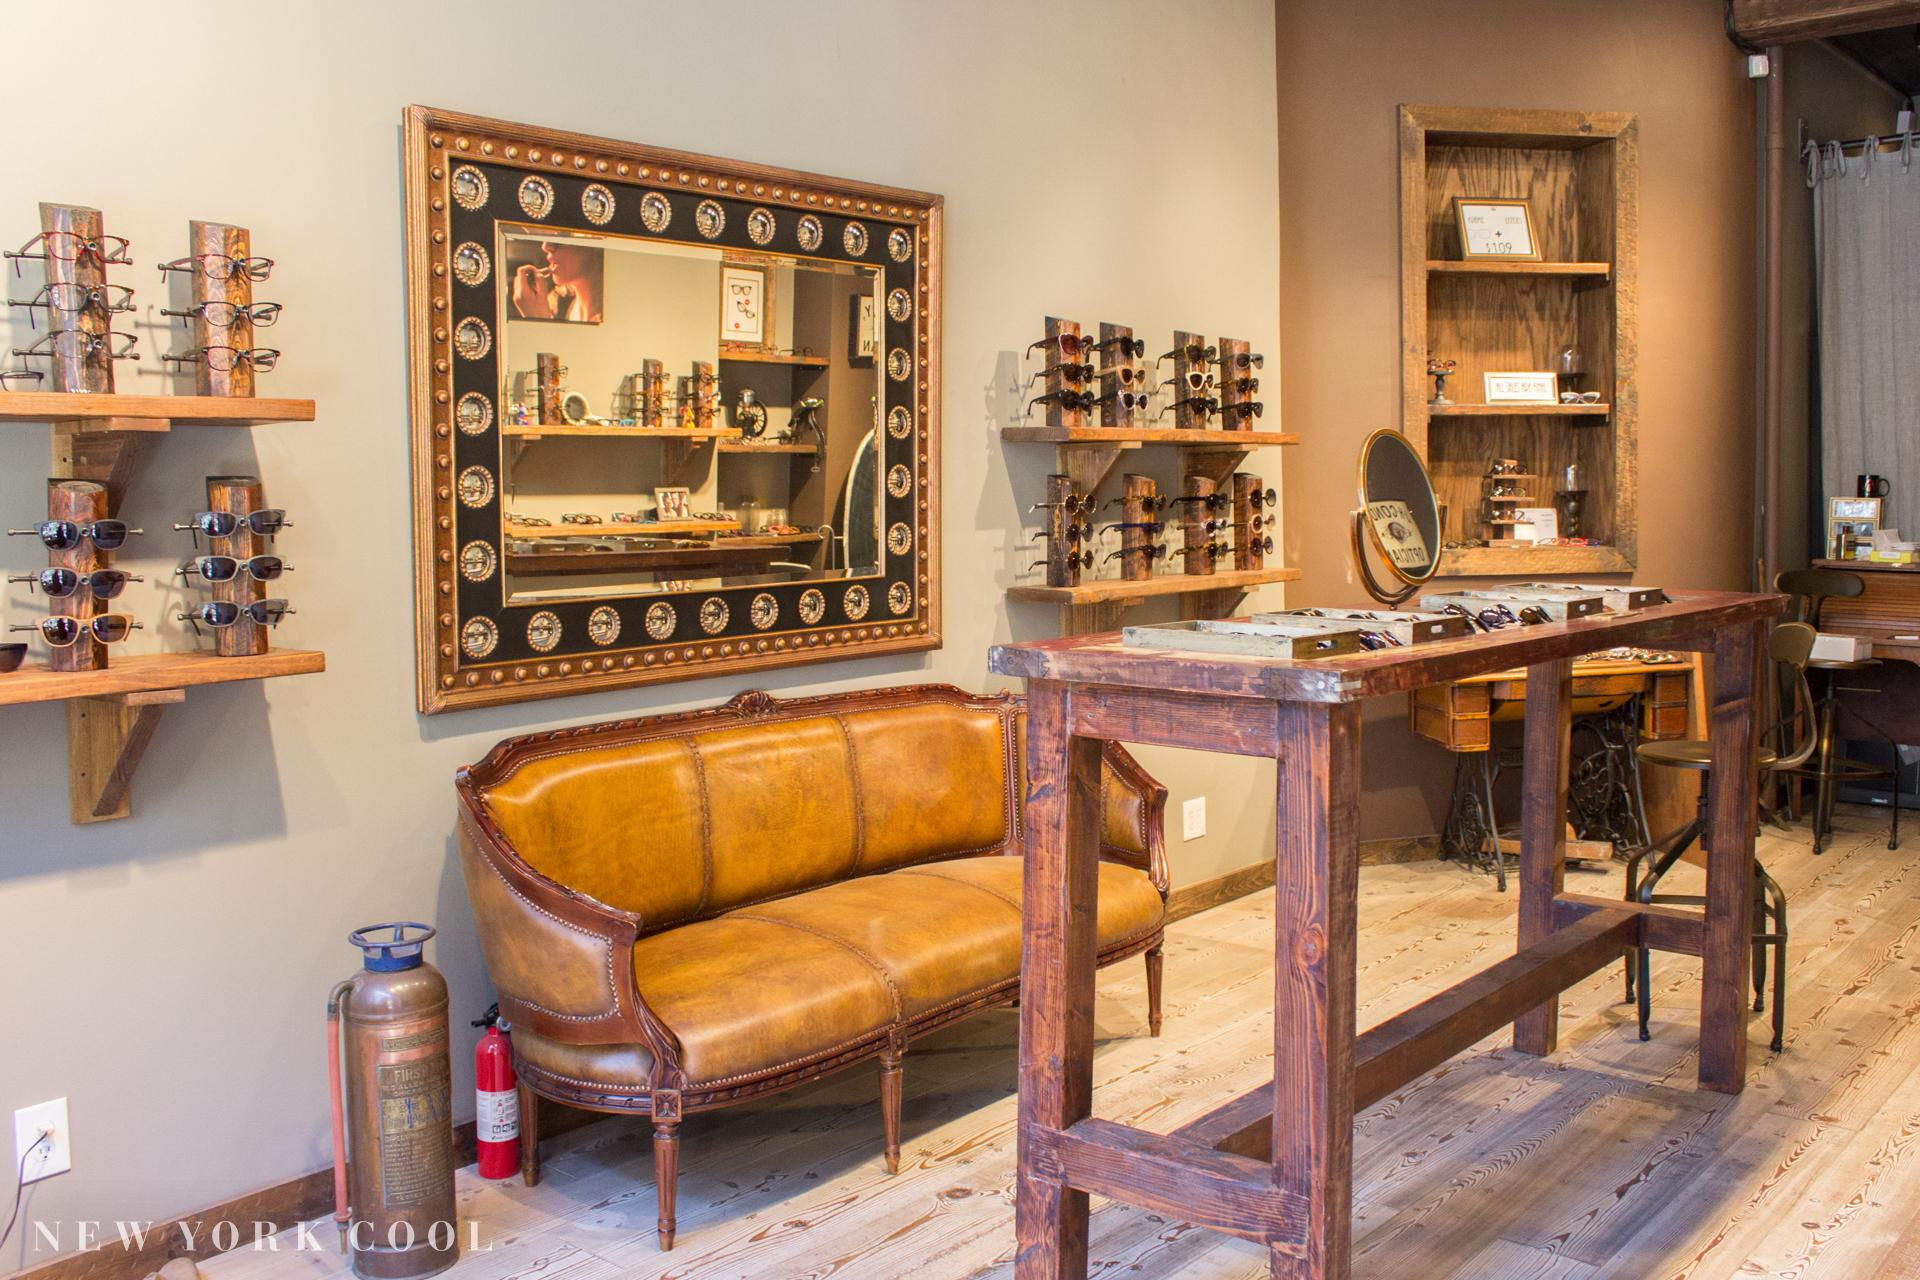 New York Cool - Shop - Vint&York